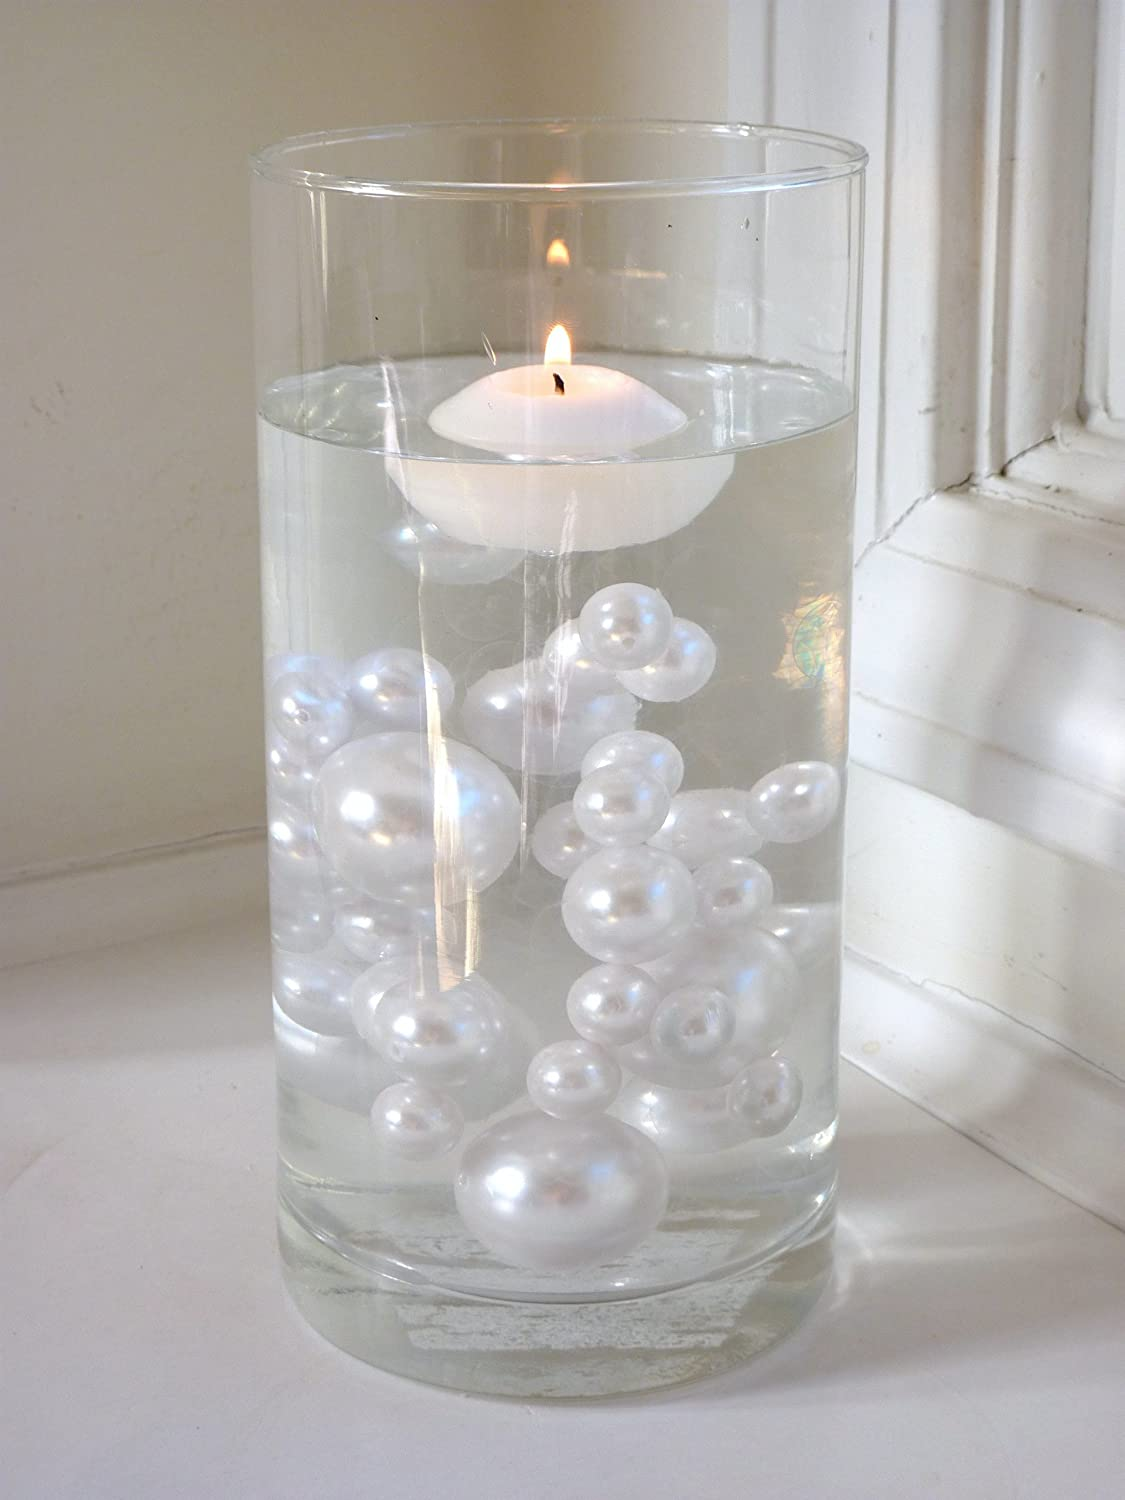 Amazon 2 packs discount jumbo assorted sizes all white amazon 2 packs discount jumbo assorted sizes all white pearls vase fillers for centerpieces to float the pearls order the transparent water gels reviewsmspy